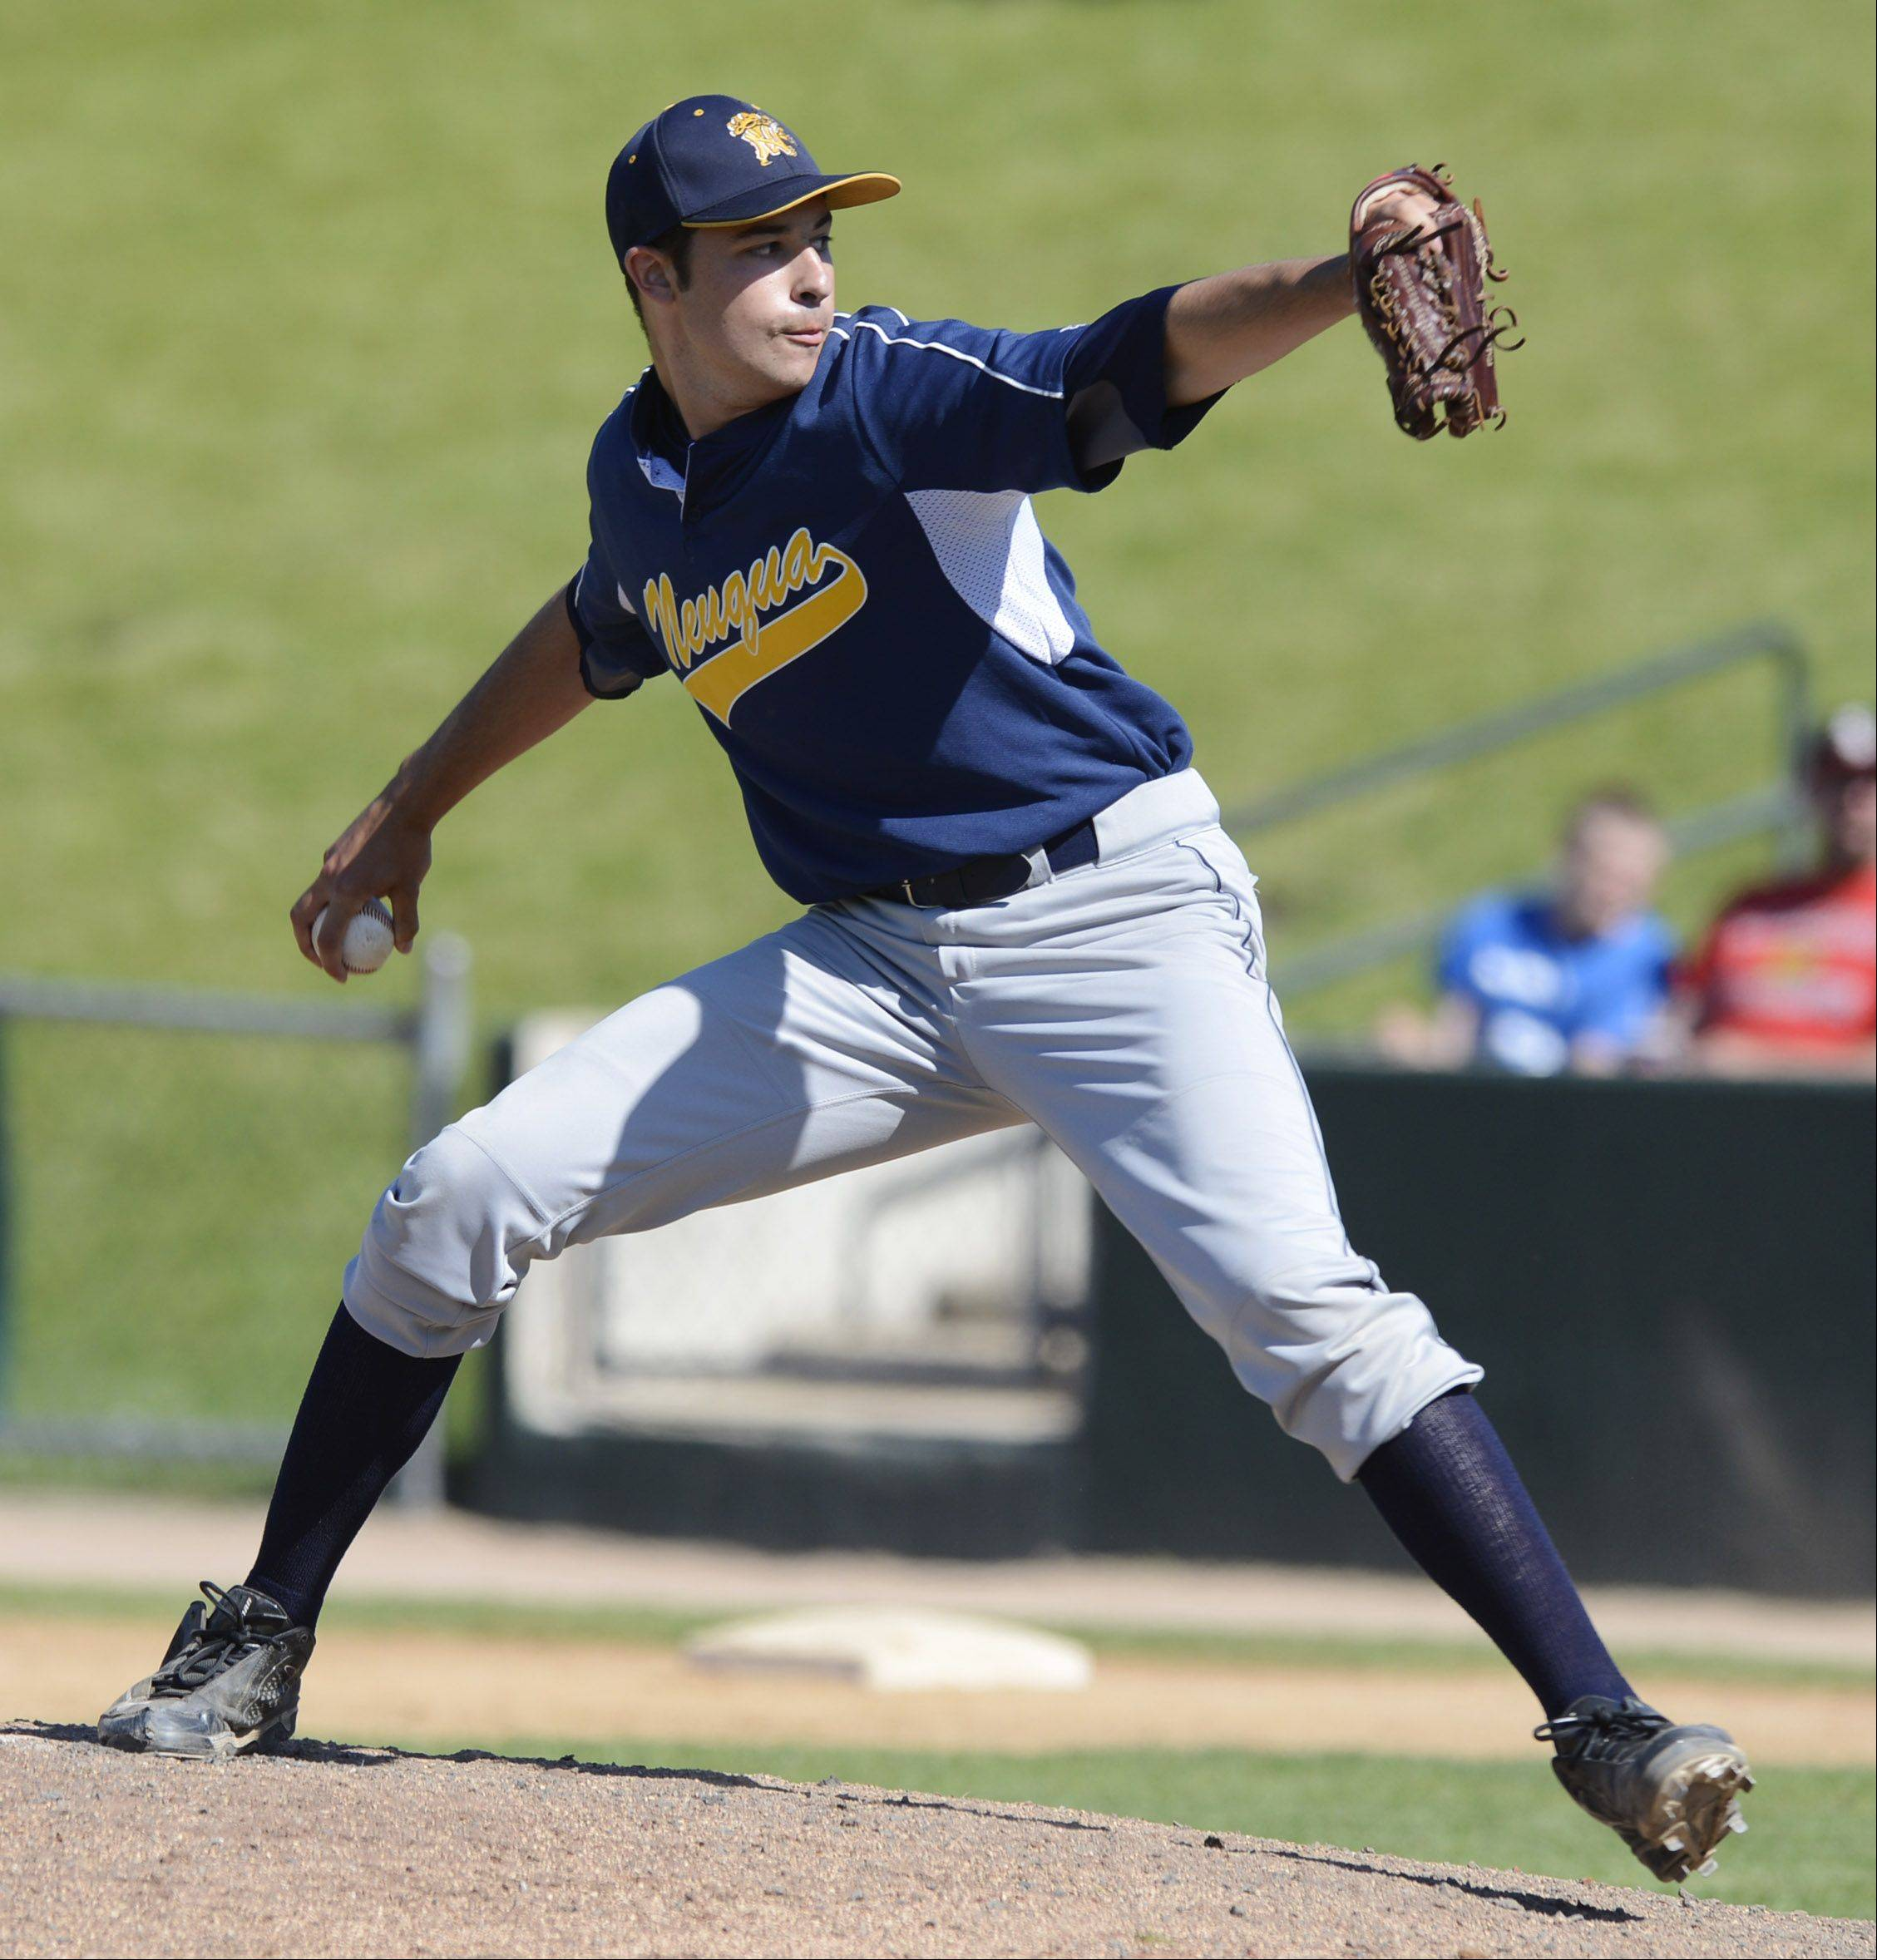 Neuqua Valley relief pitcher David Gerber delivers.